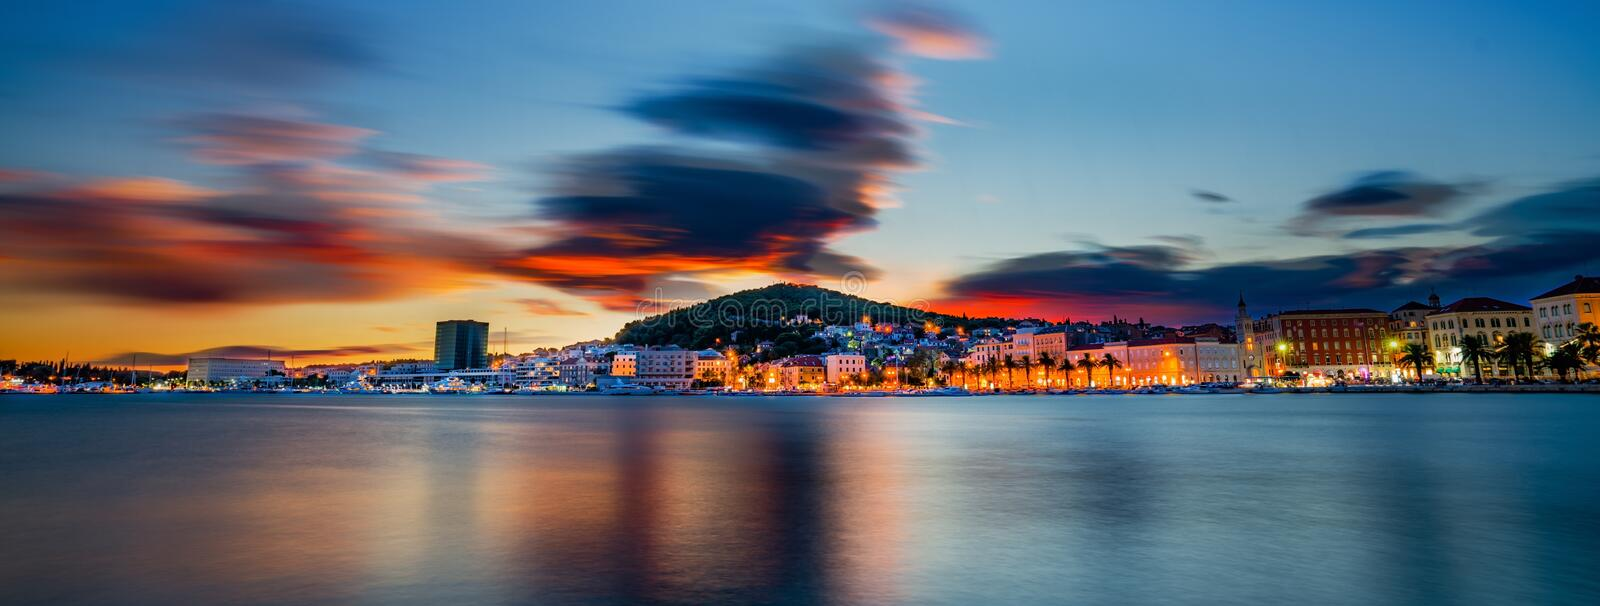 Sunset of Split, Croatia royalty free stock image